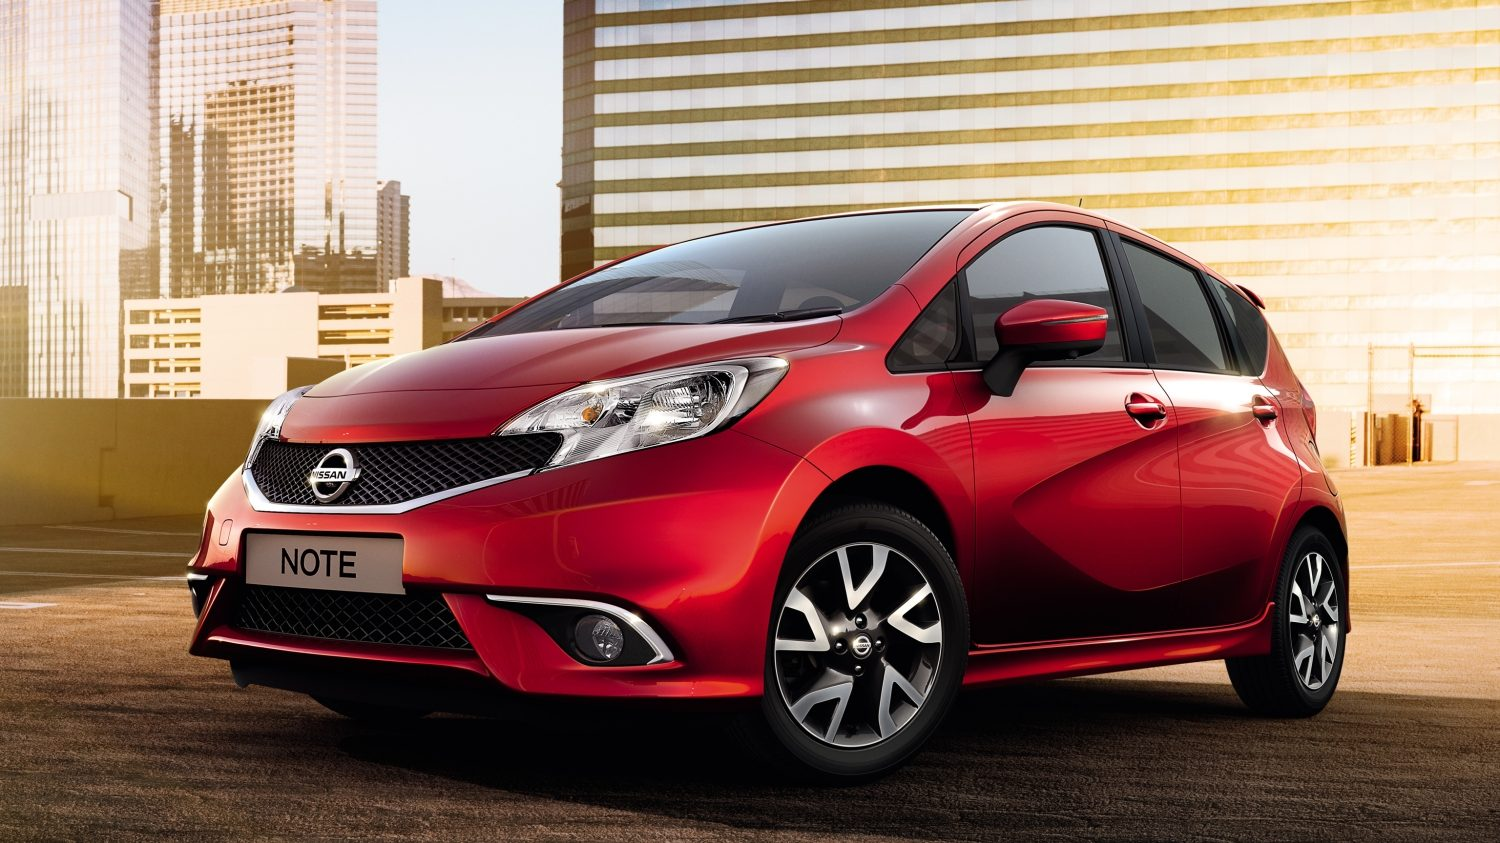 NISSAN NOTE New Red – 3/4 Frontansicht